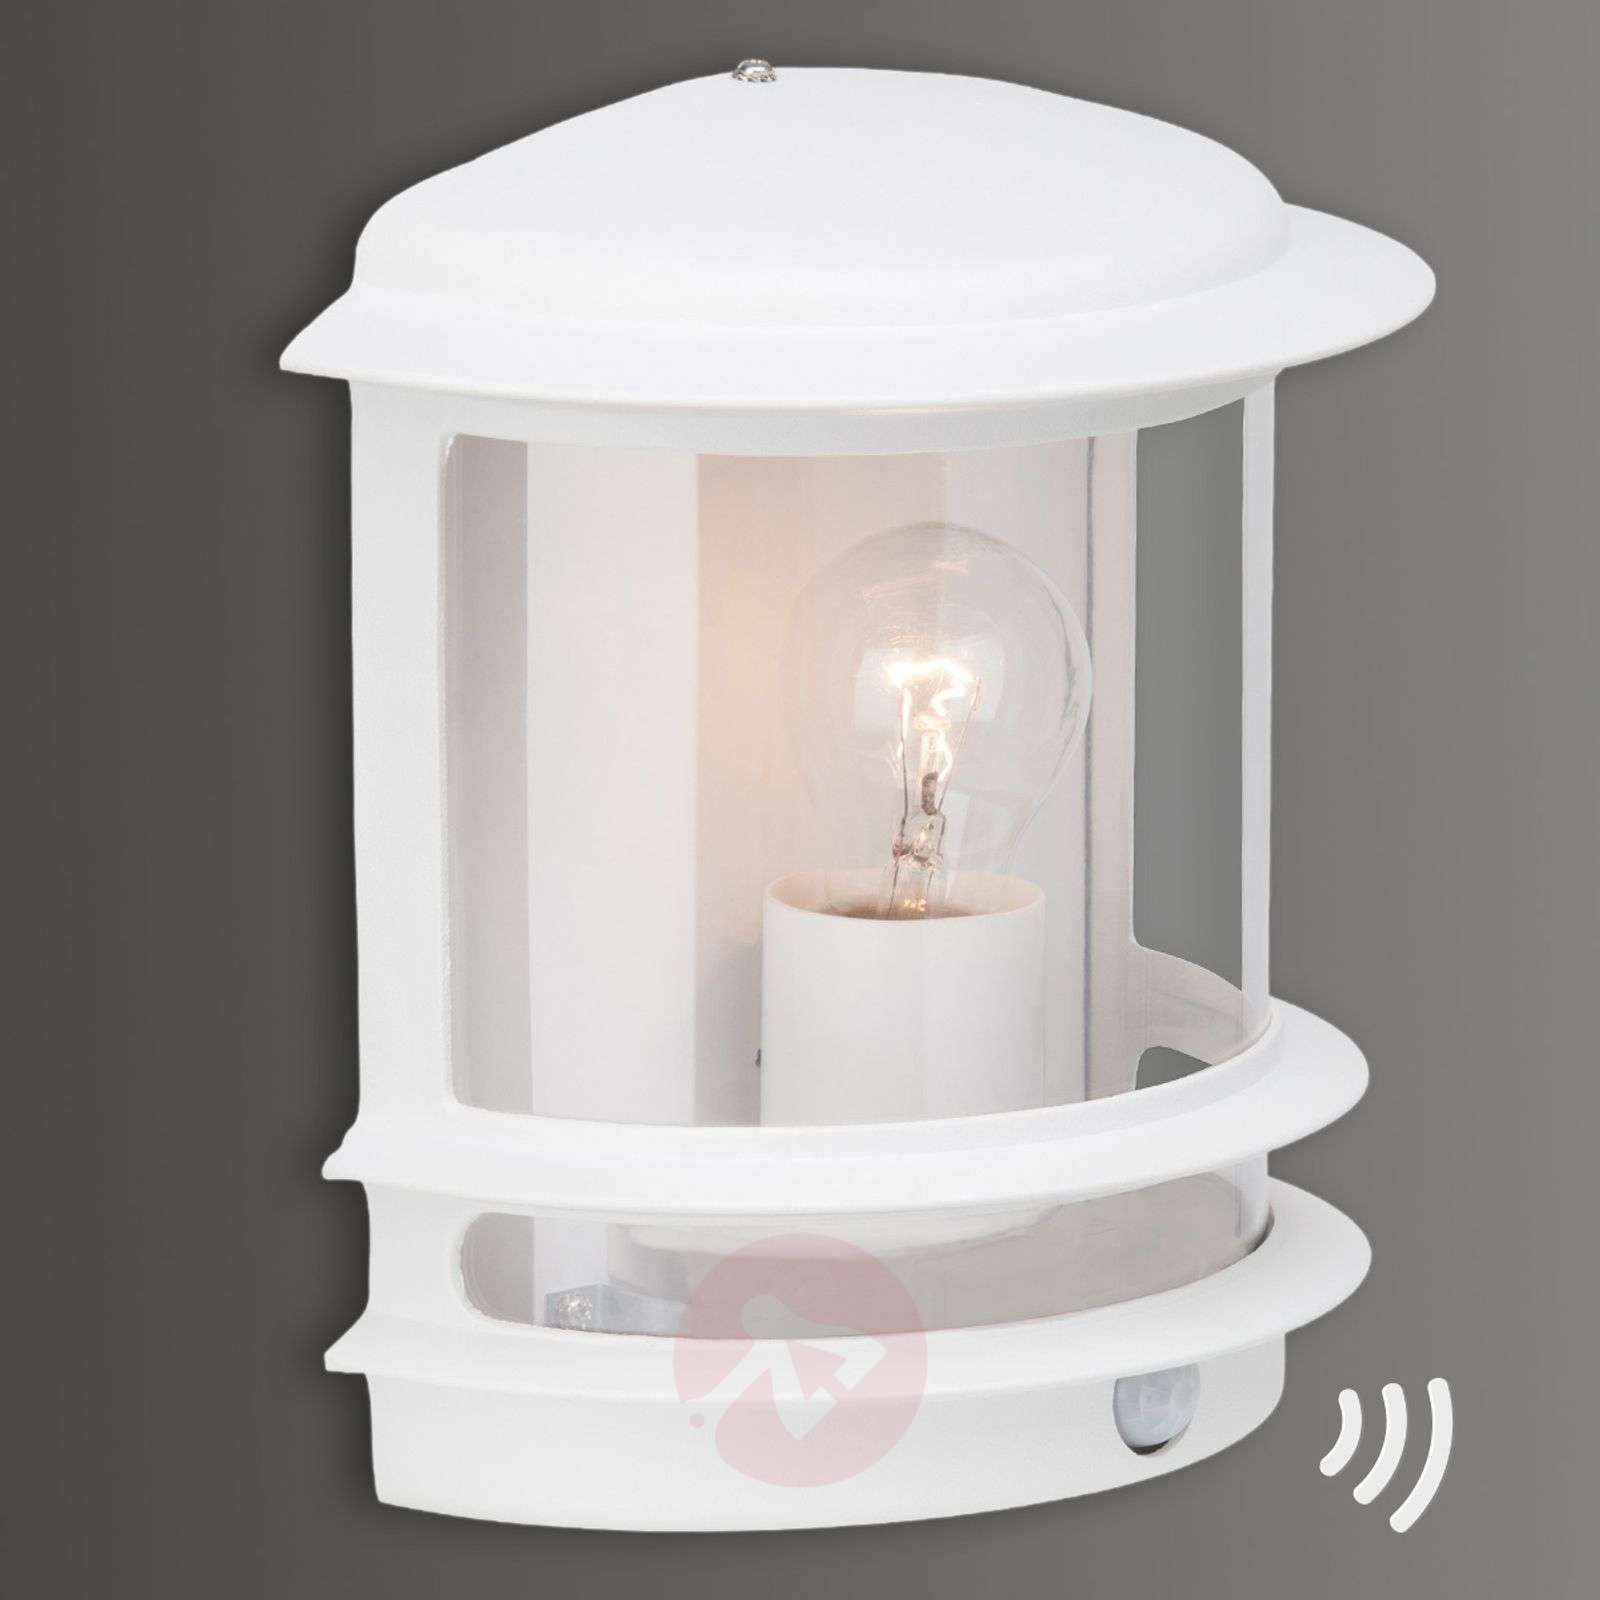 Hollywood outdoor wall light - w/ motion detector_1507120_1